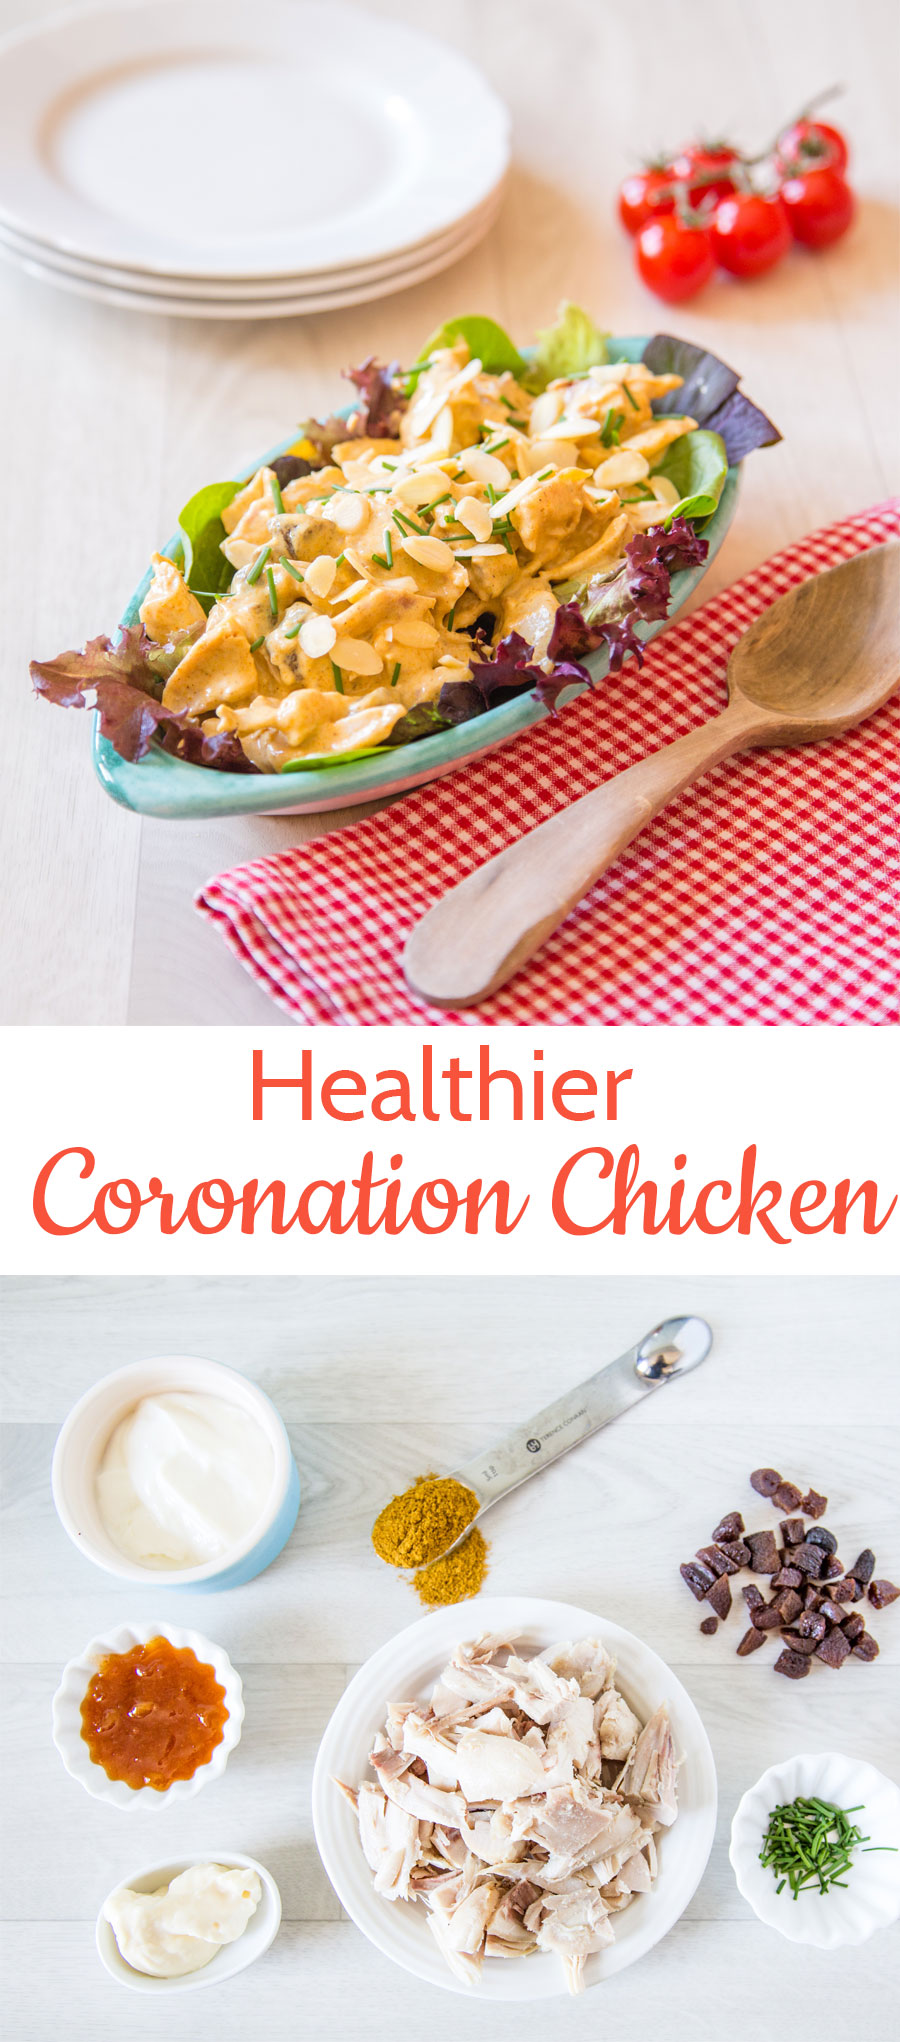 Coronation chicken in a dish with a red and white checked napkin and wooden spoon above an overhead photo of recipe ingredients with text overlay.